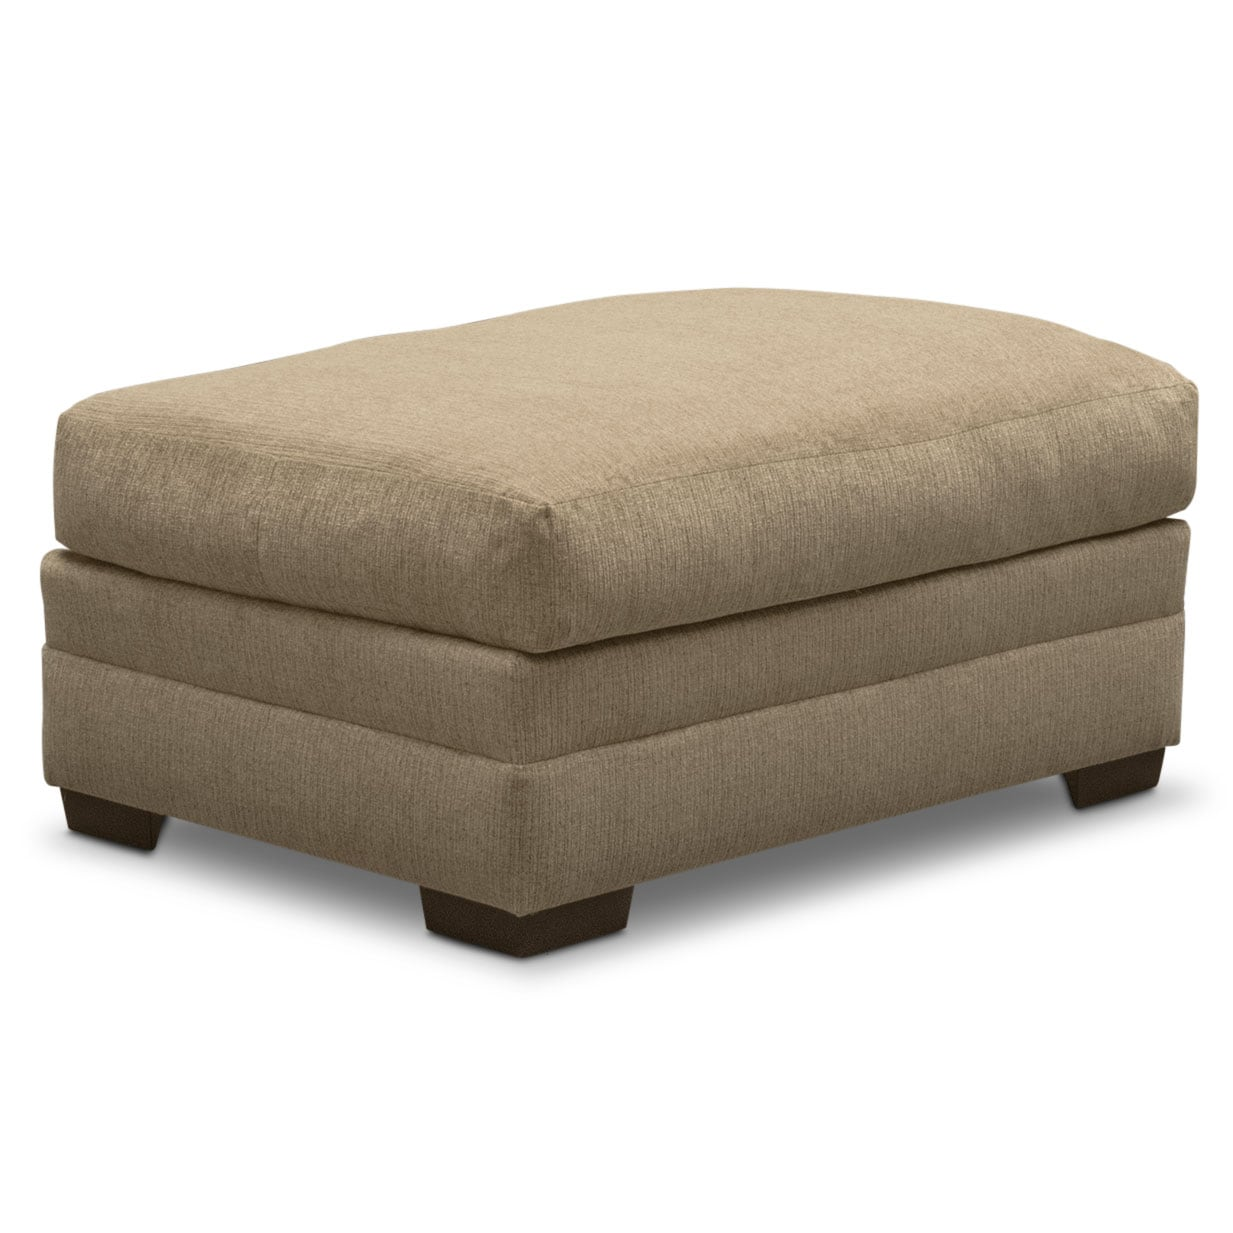 Wilshire Ottoman - Taupe